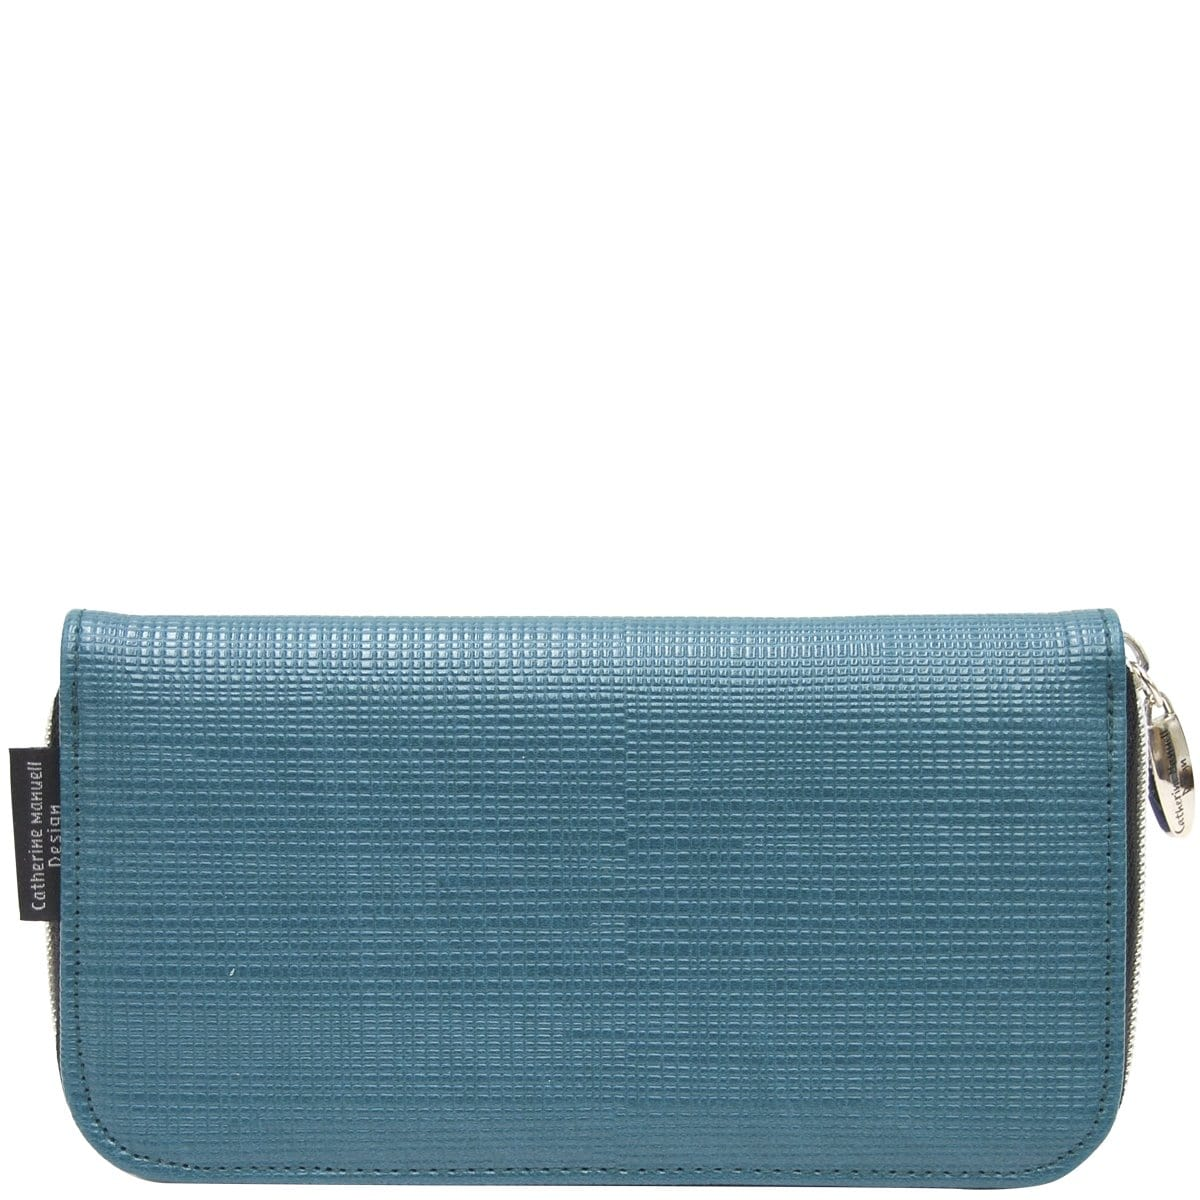 Curved Zip Section Wallet - Teal Criss Cross